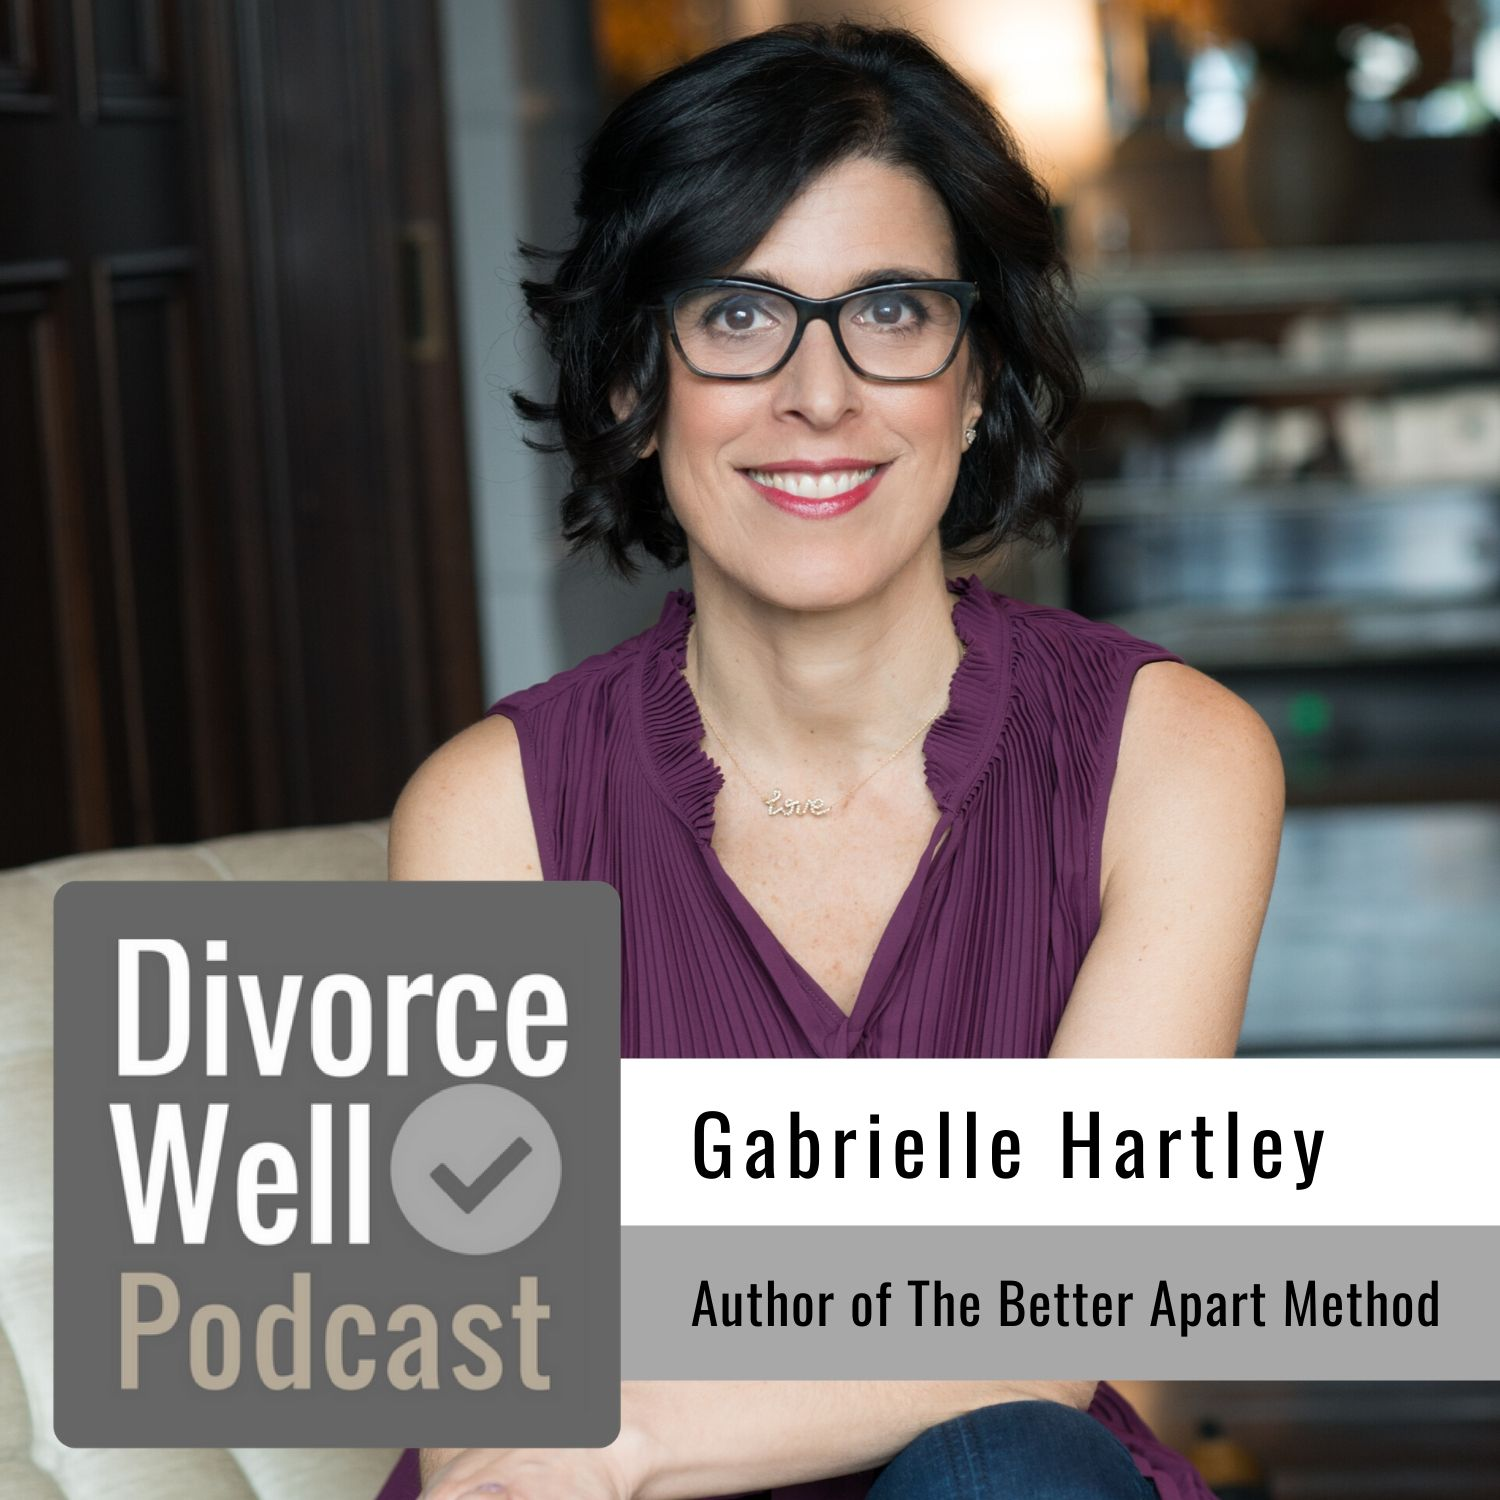 The Divorce Well Podcast - 29 - Gabrielle Hartley, Author of The Better Apart Method